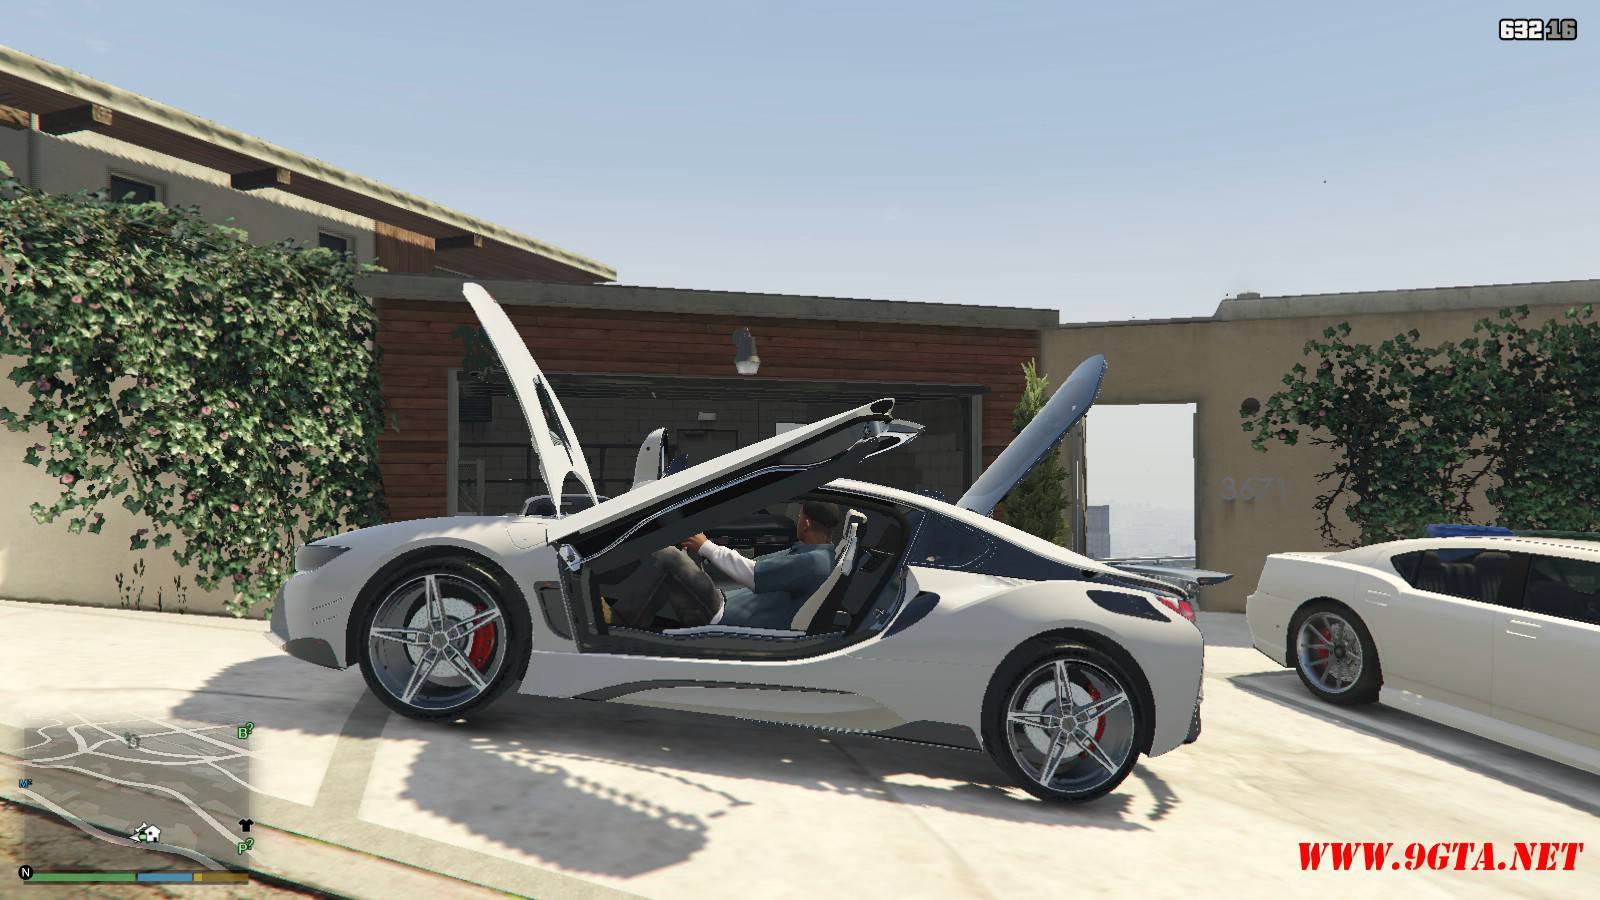 BMW i8 AC Schinitzer ACS8 Mod For GTA5 (14)